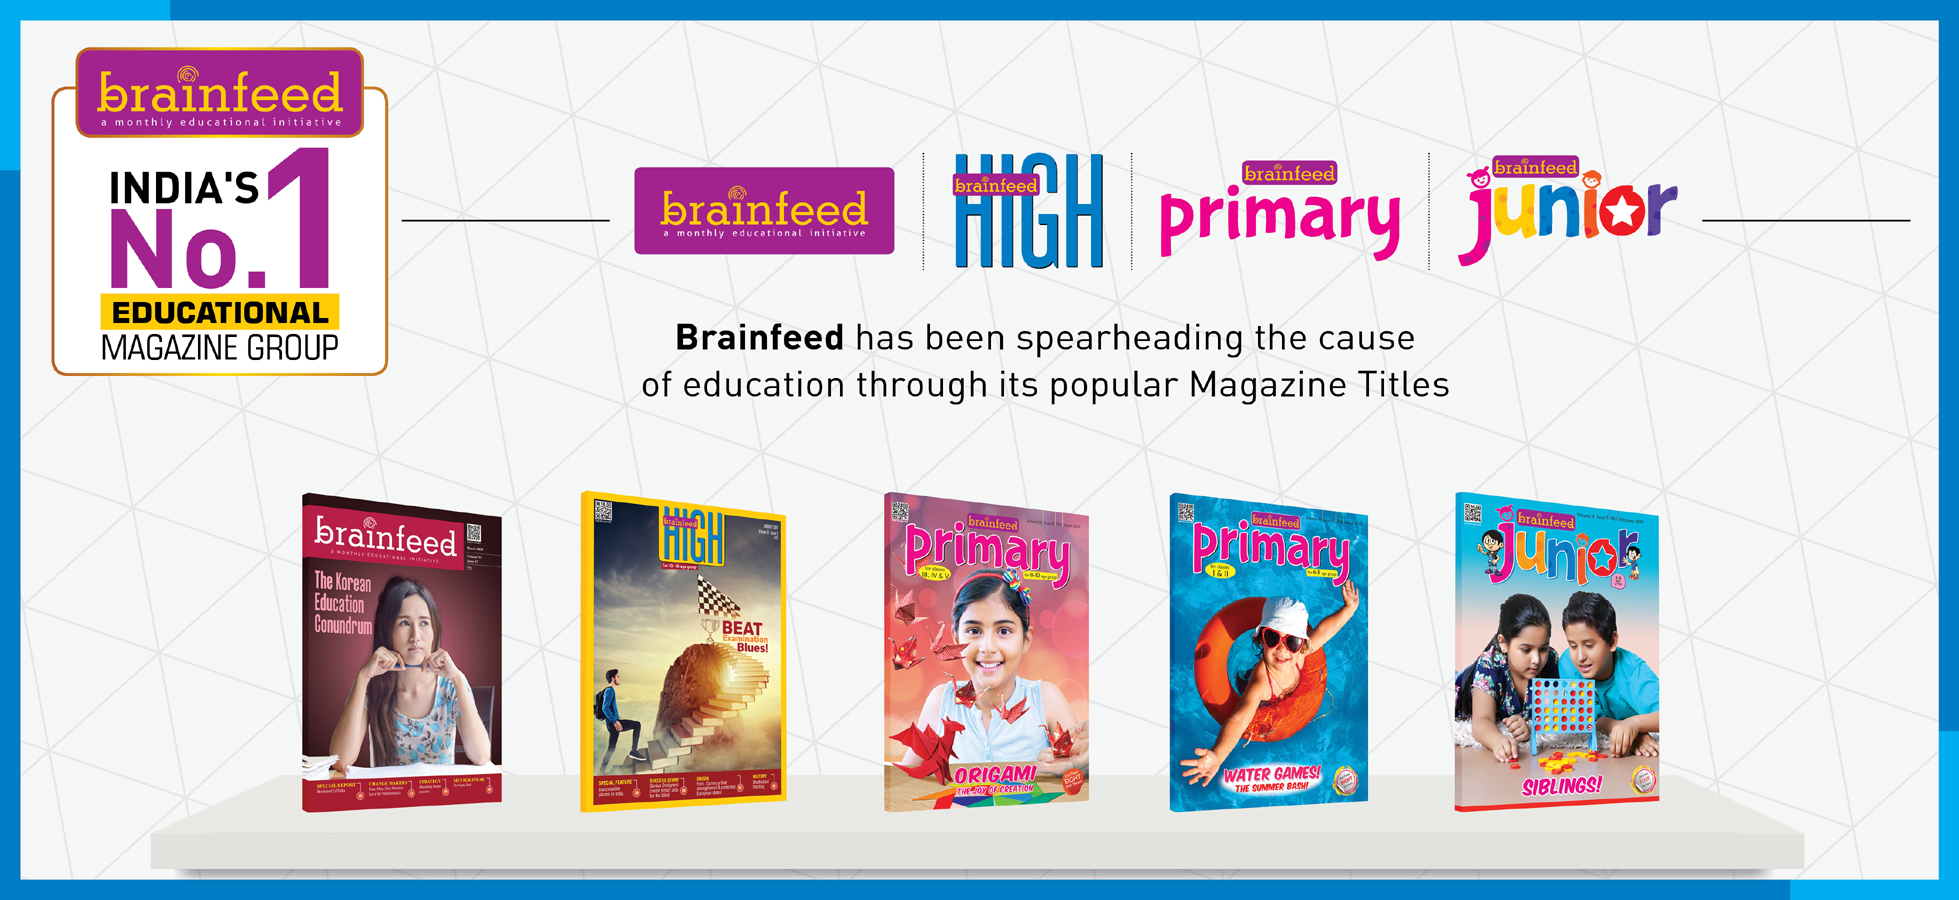 Brainfeed Magazine